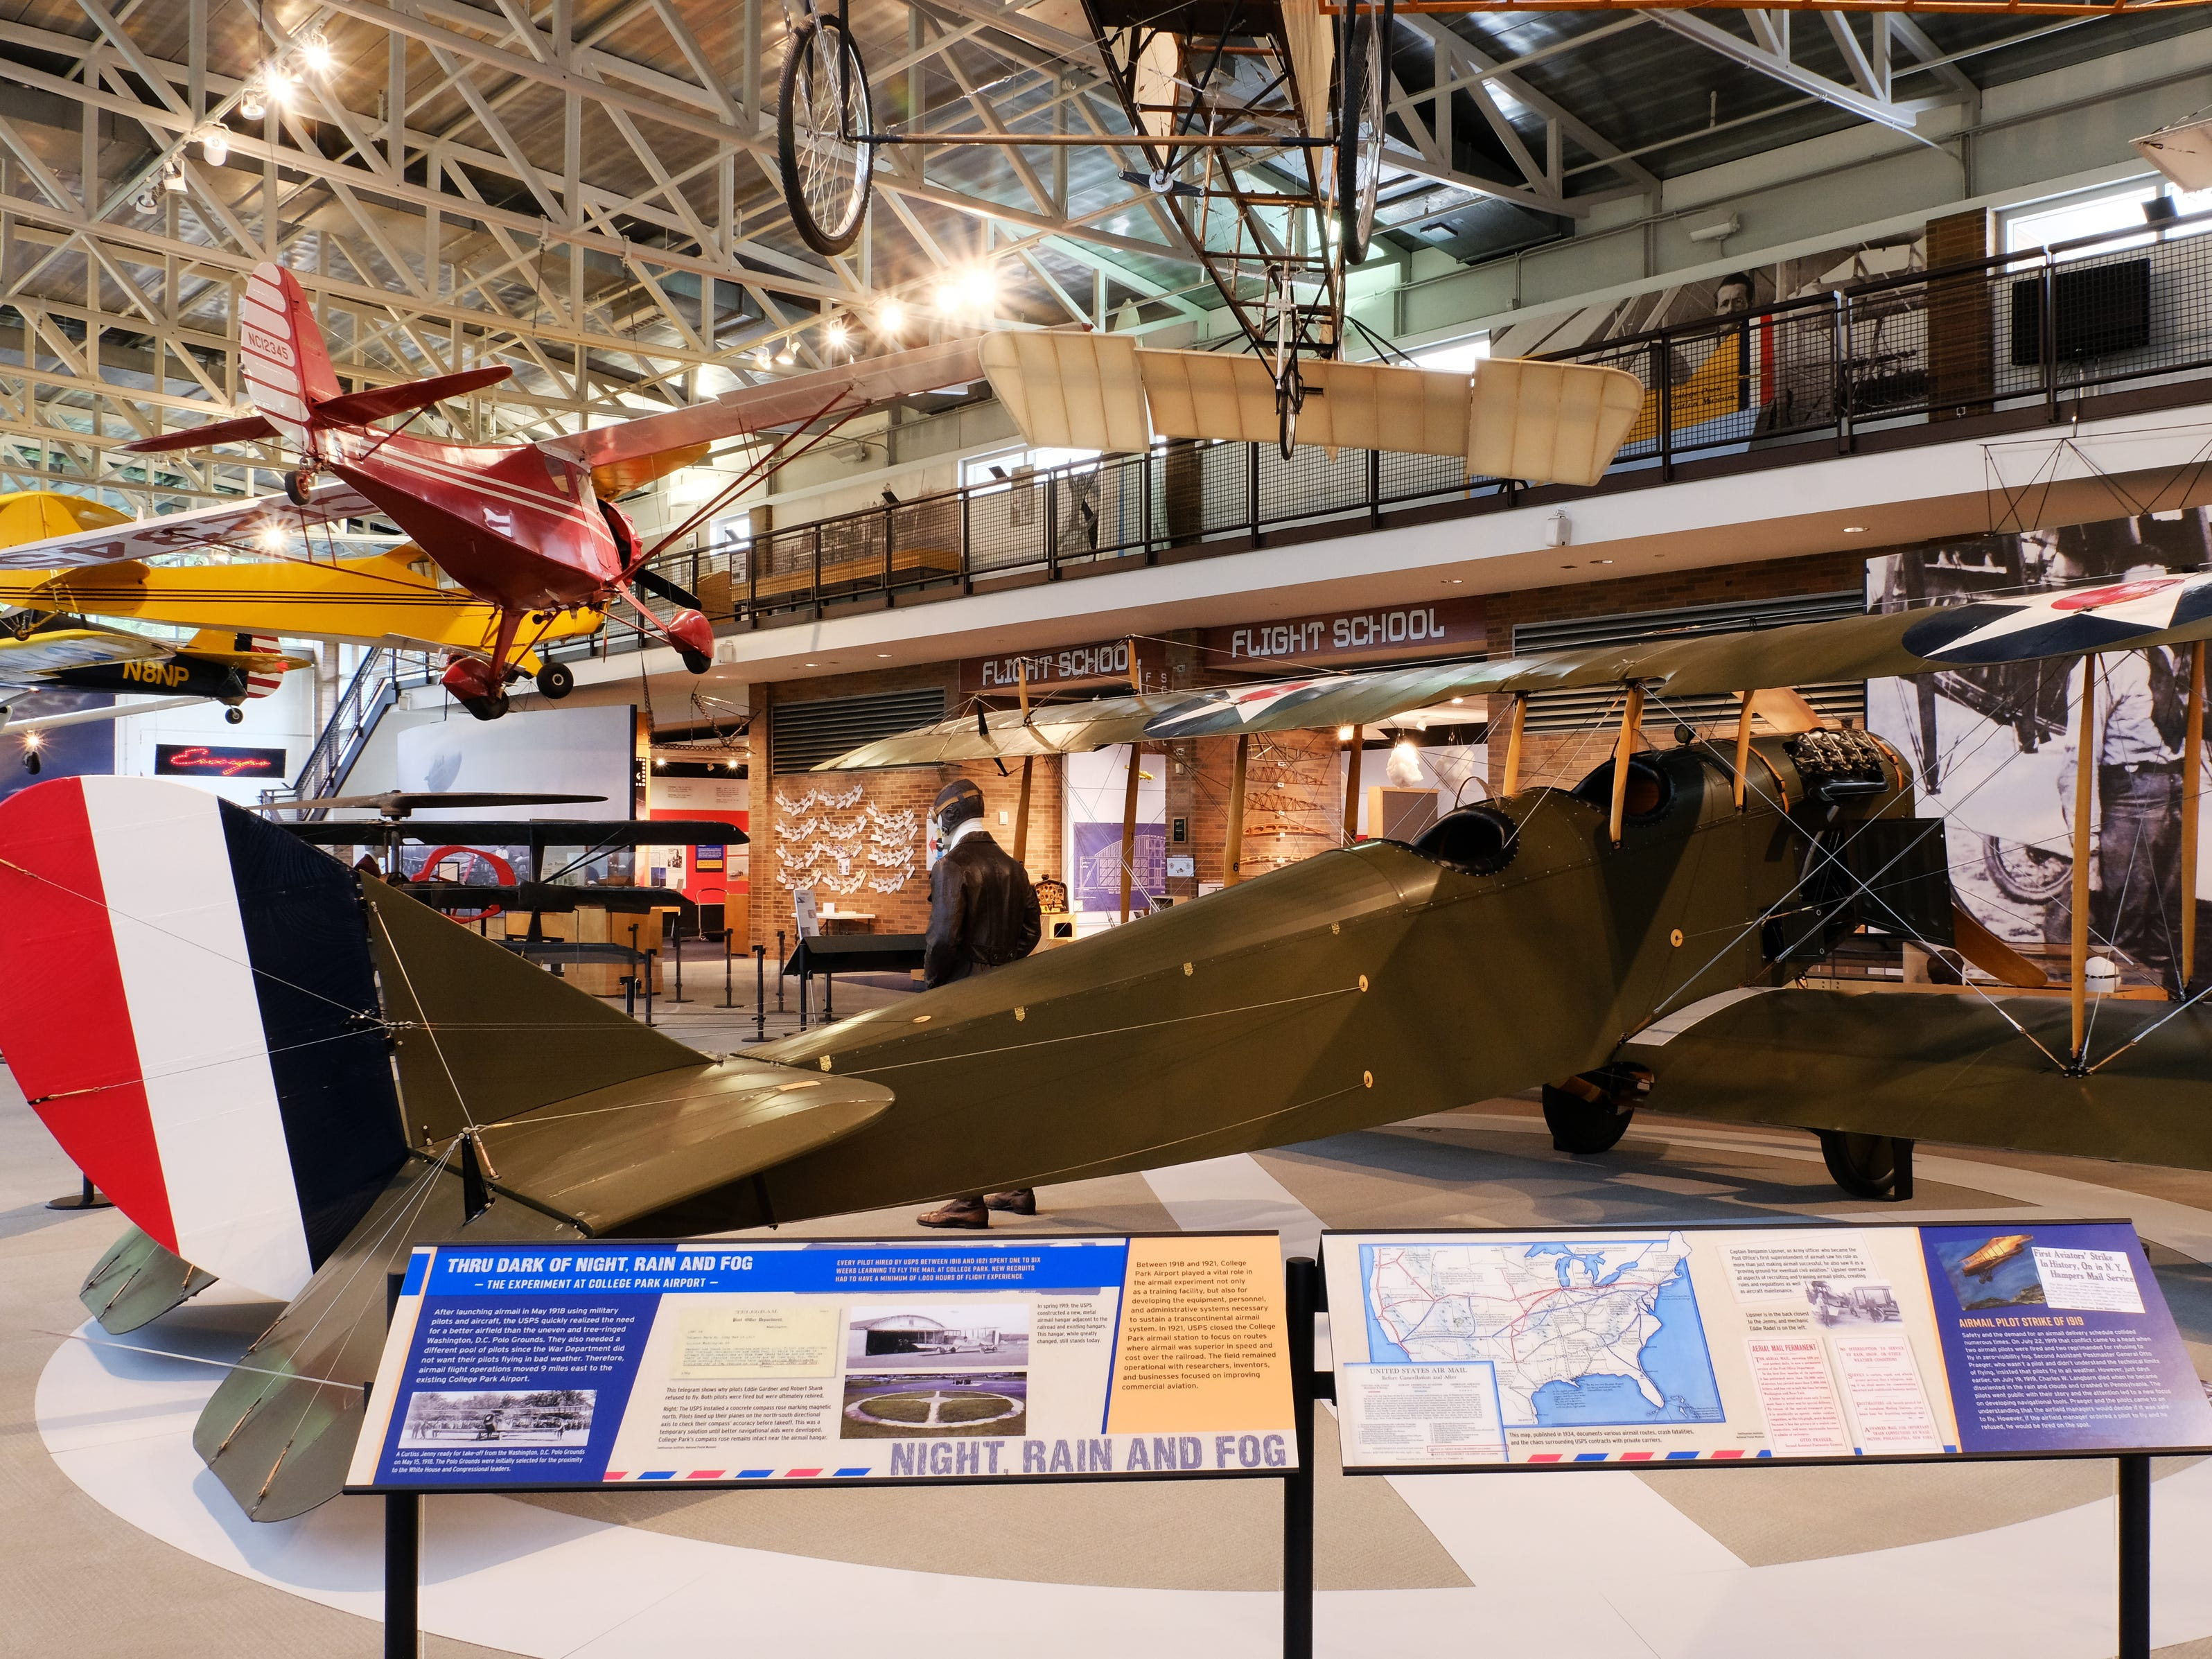 To celebrate the 100th anniversary of U.S. Post Office Airmail Service, Maryland's College Park Aviation Museum and the College Park Airport (which just so happens to be the world's oldest continuously operating airport) have joined forces to recognize the days of sending mail through the skies.